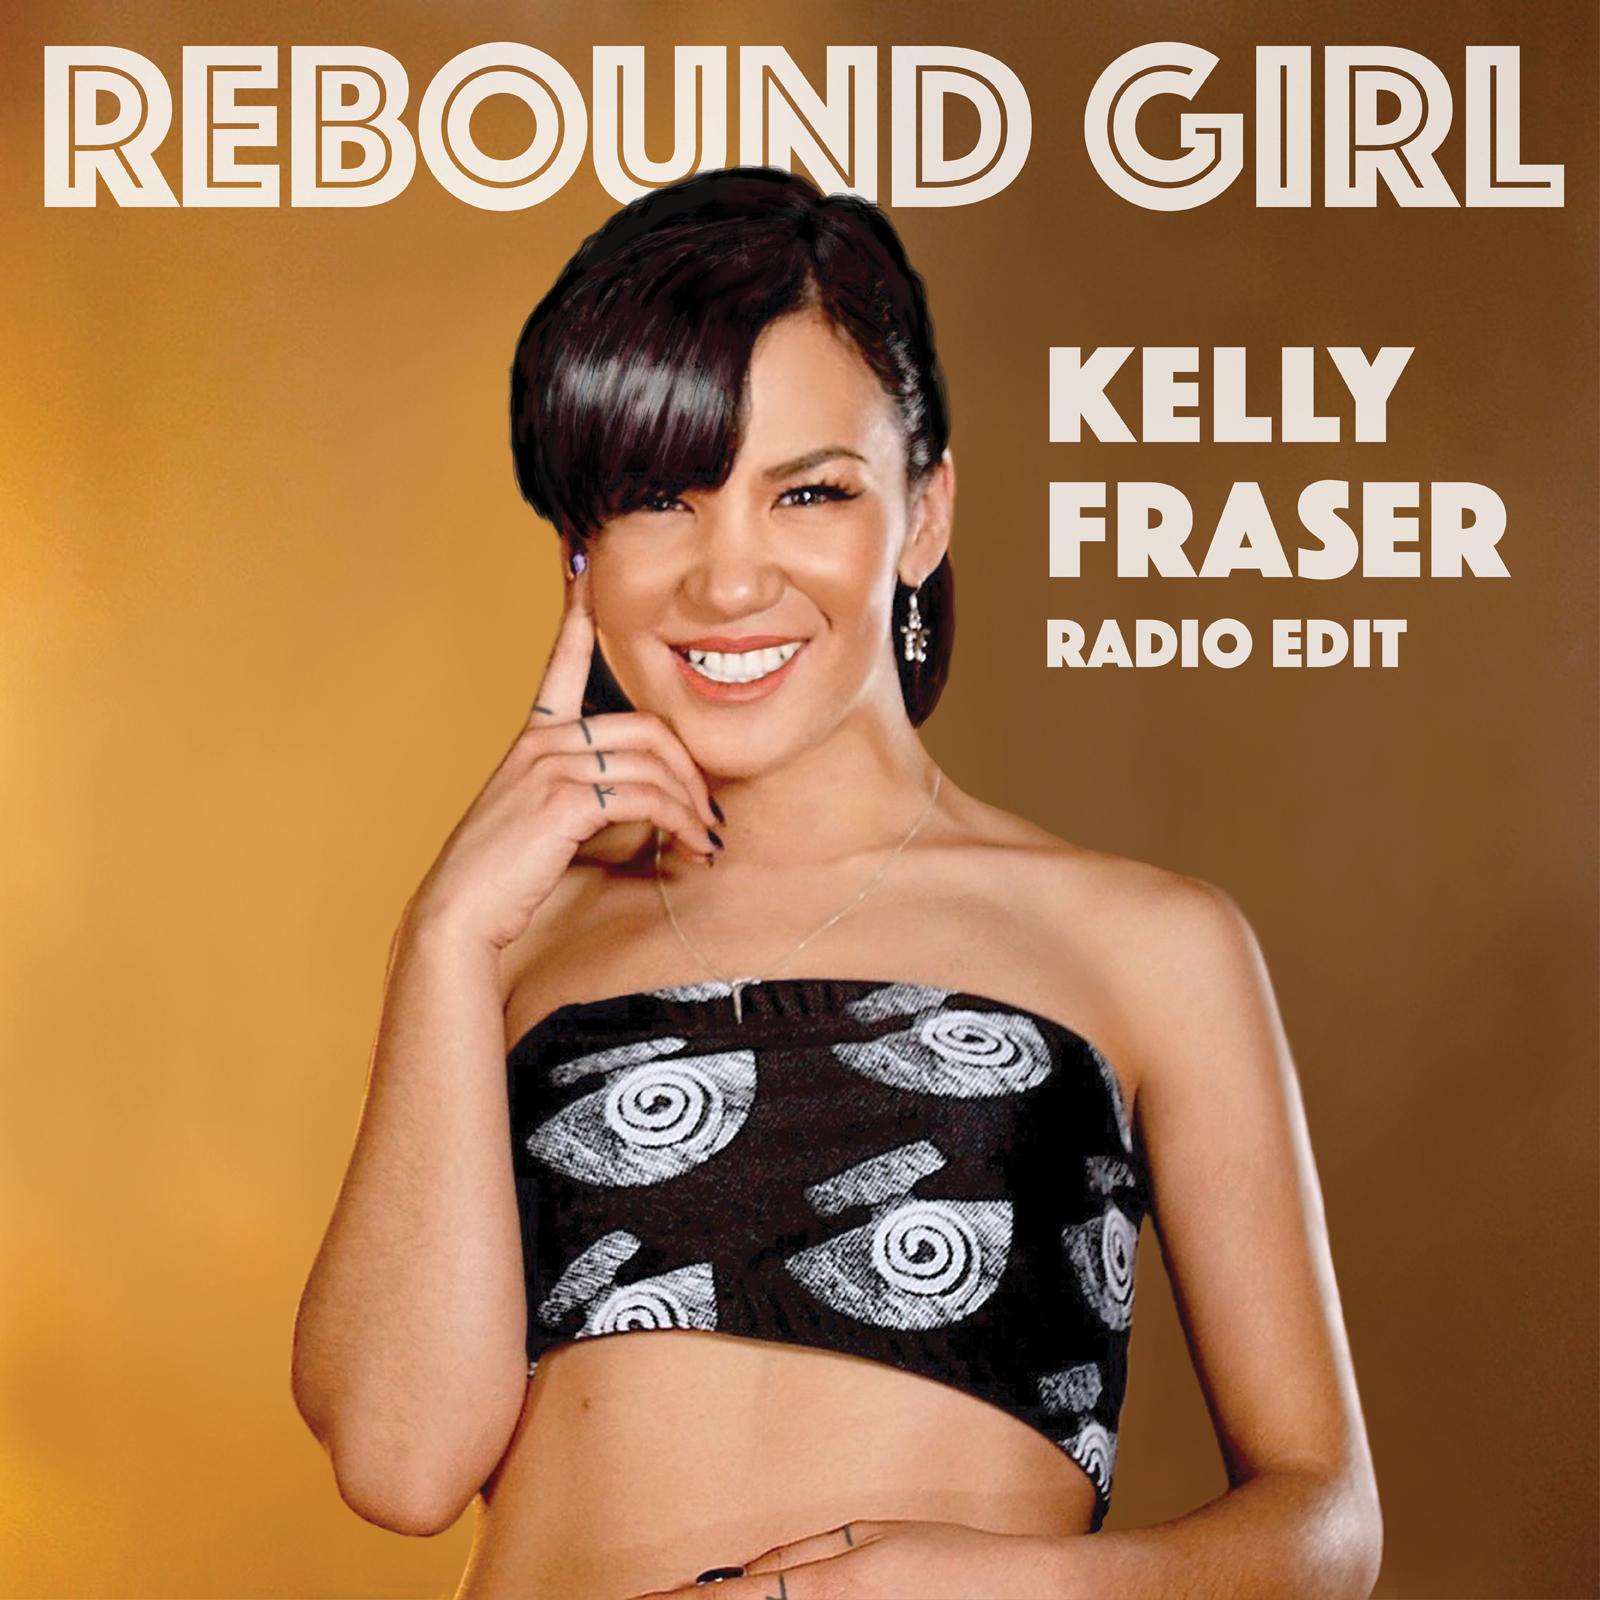 Inuit Kelly Fraser Rebound Girl single